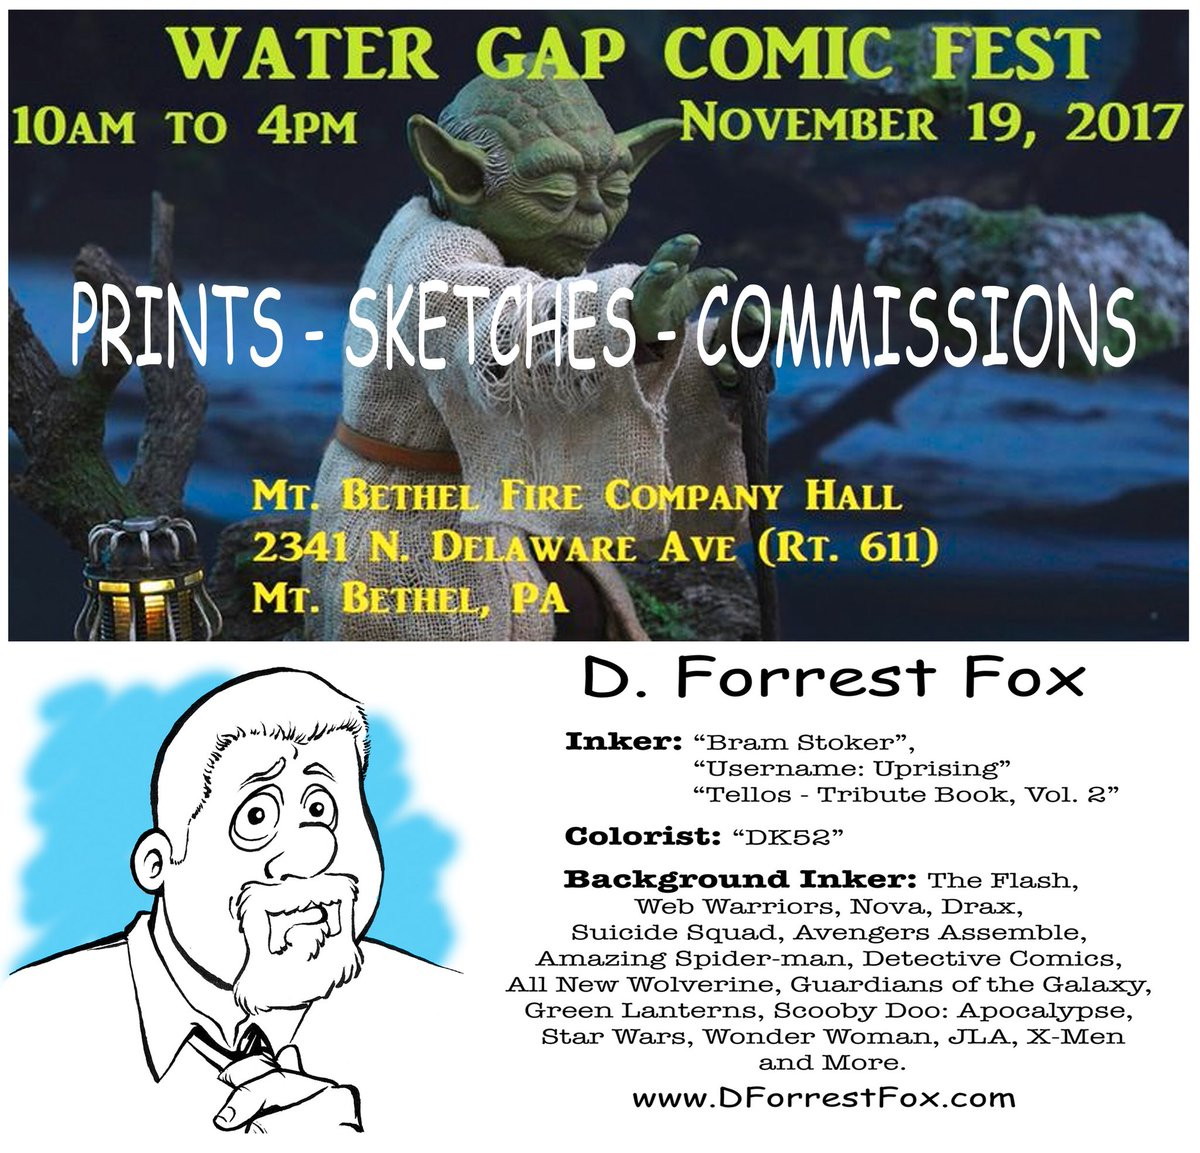 Gonna be doing a lot of sketching today...so if you're in the area, stop in and say hi. #comiccon #comics #comicbooks #marvel #dccomics #sketch #watergap #mtbethel #comicfest<br>http://pic.twitter.com/sGcJPRrFx3